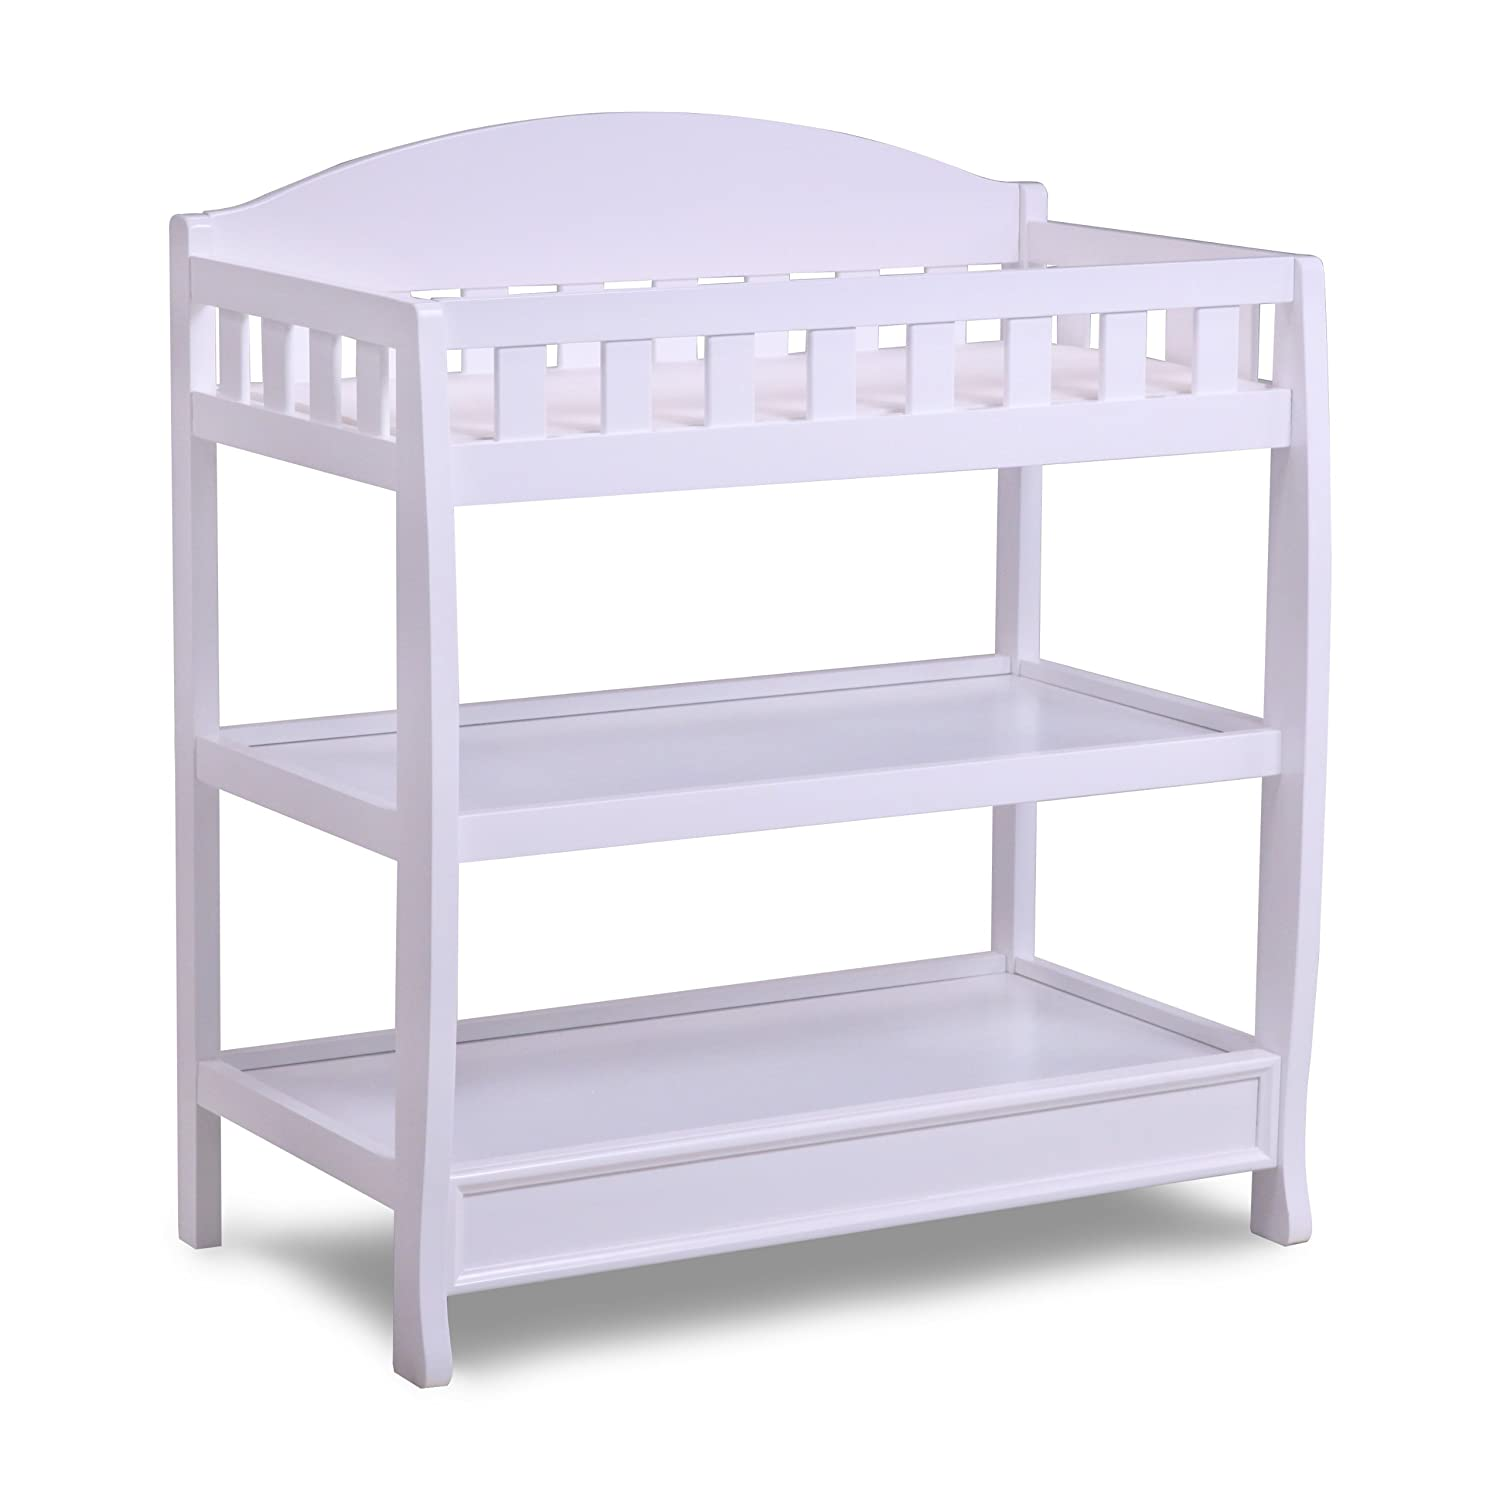 Amazon.com : Delta Children Infant Changing Table with Pad, White : Baby